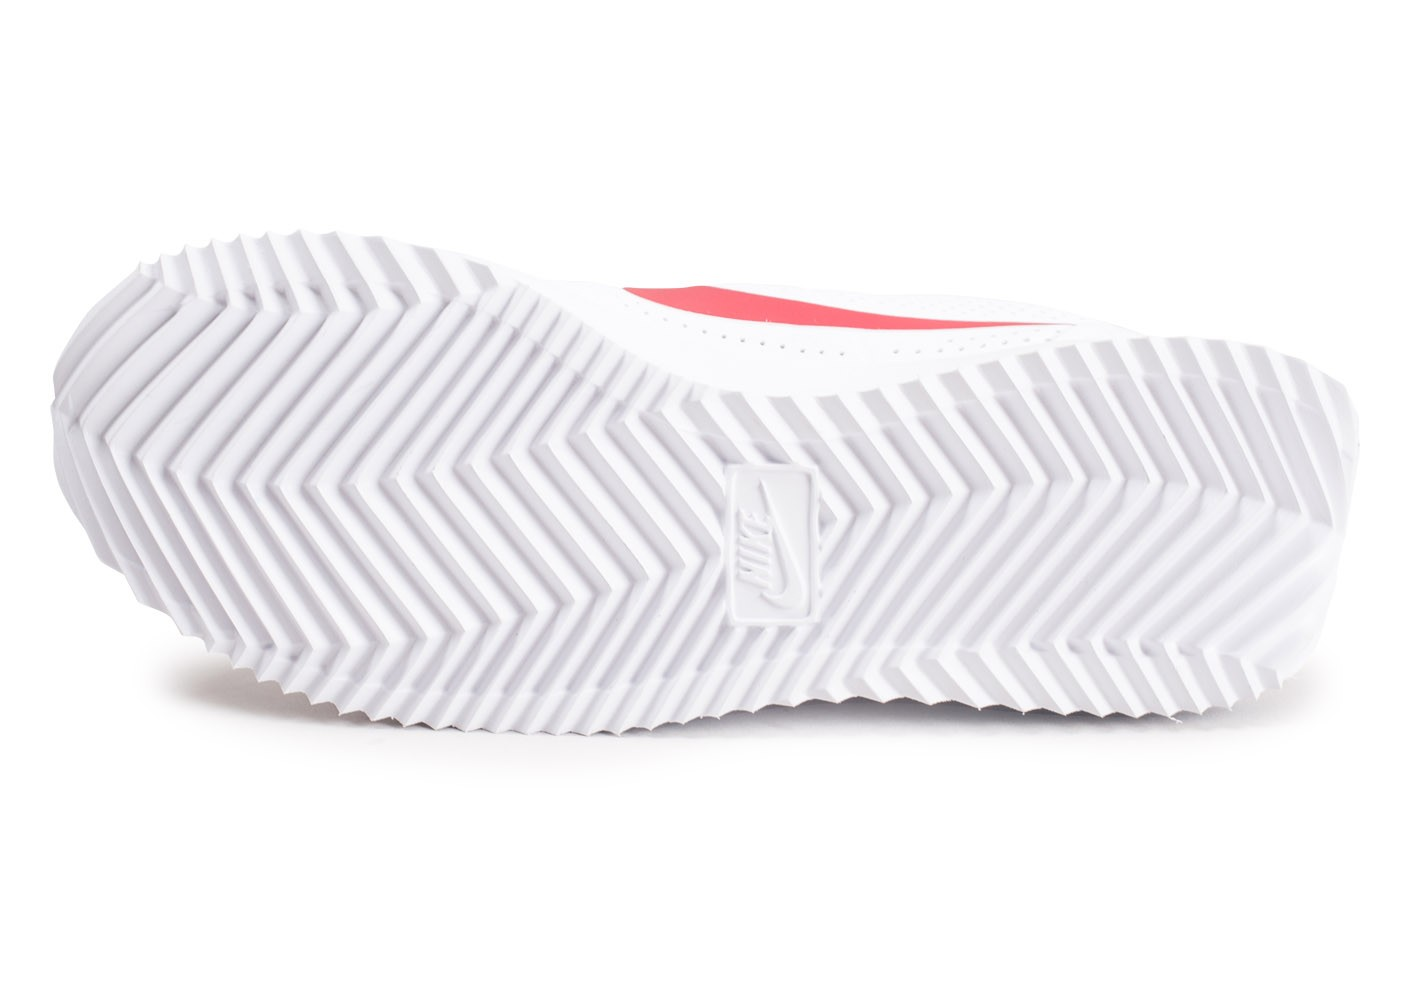 check out cbddd 54f0b ... Chaussures Nike Cortez Ultra Moire blanche vue avant ...